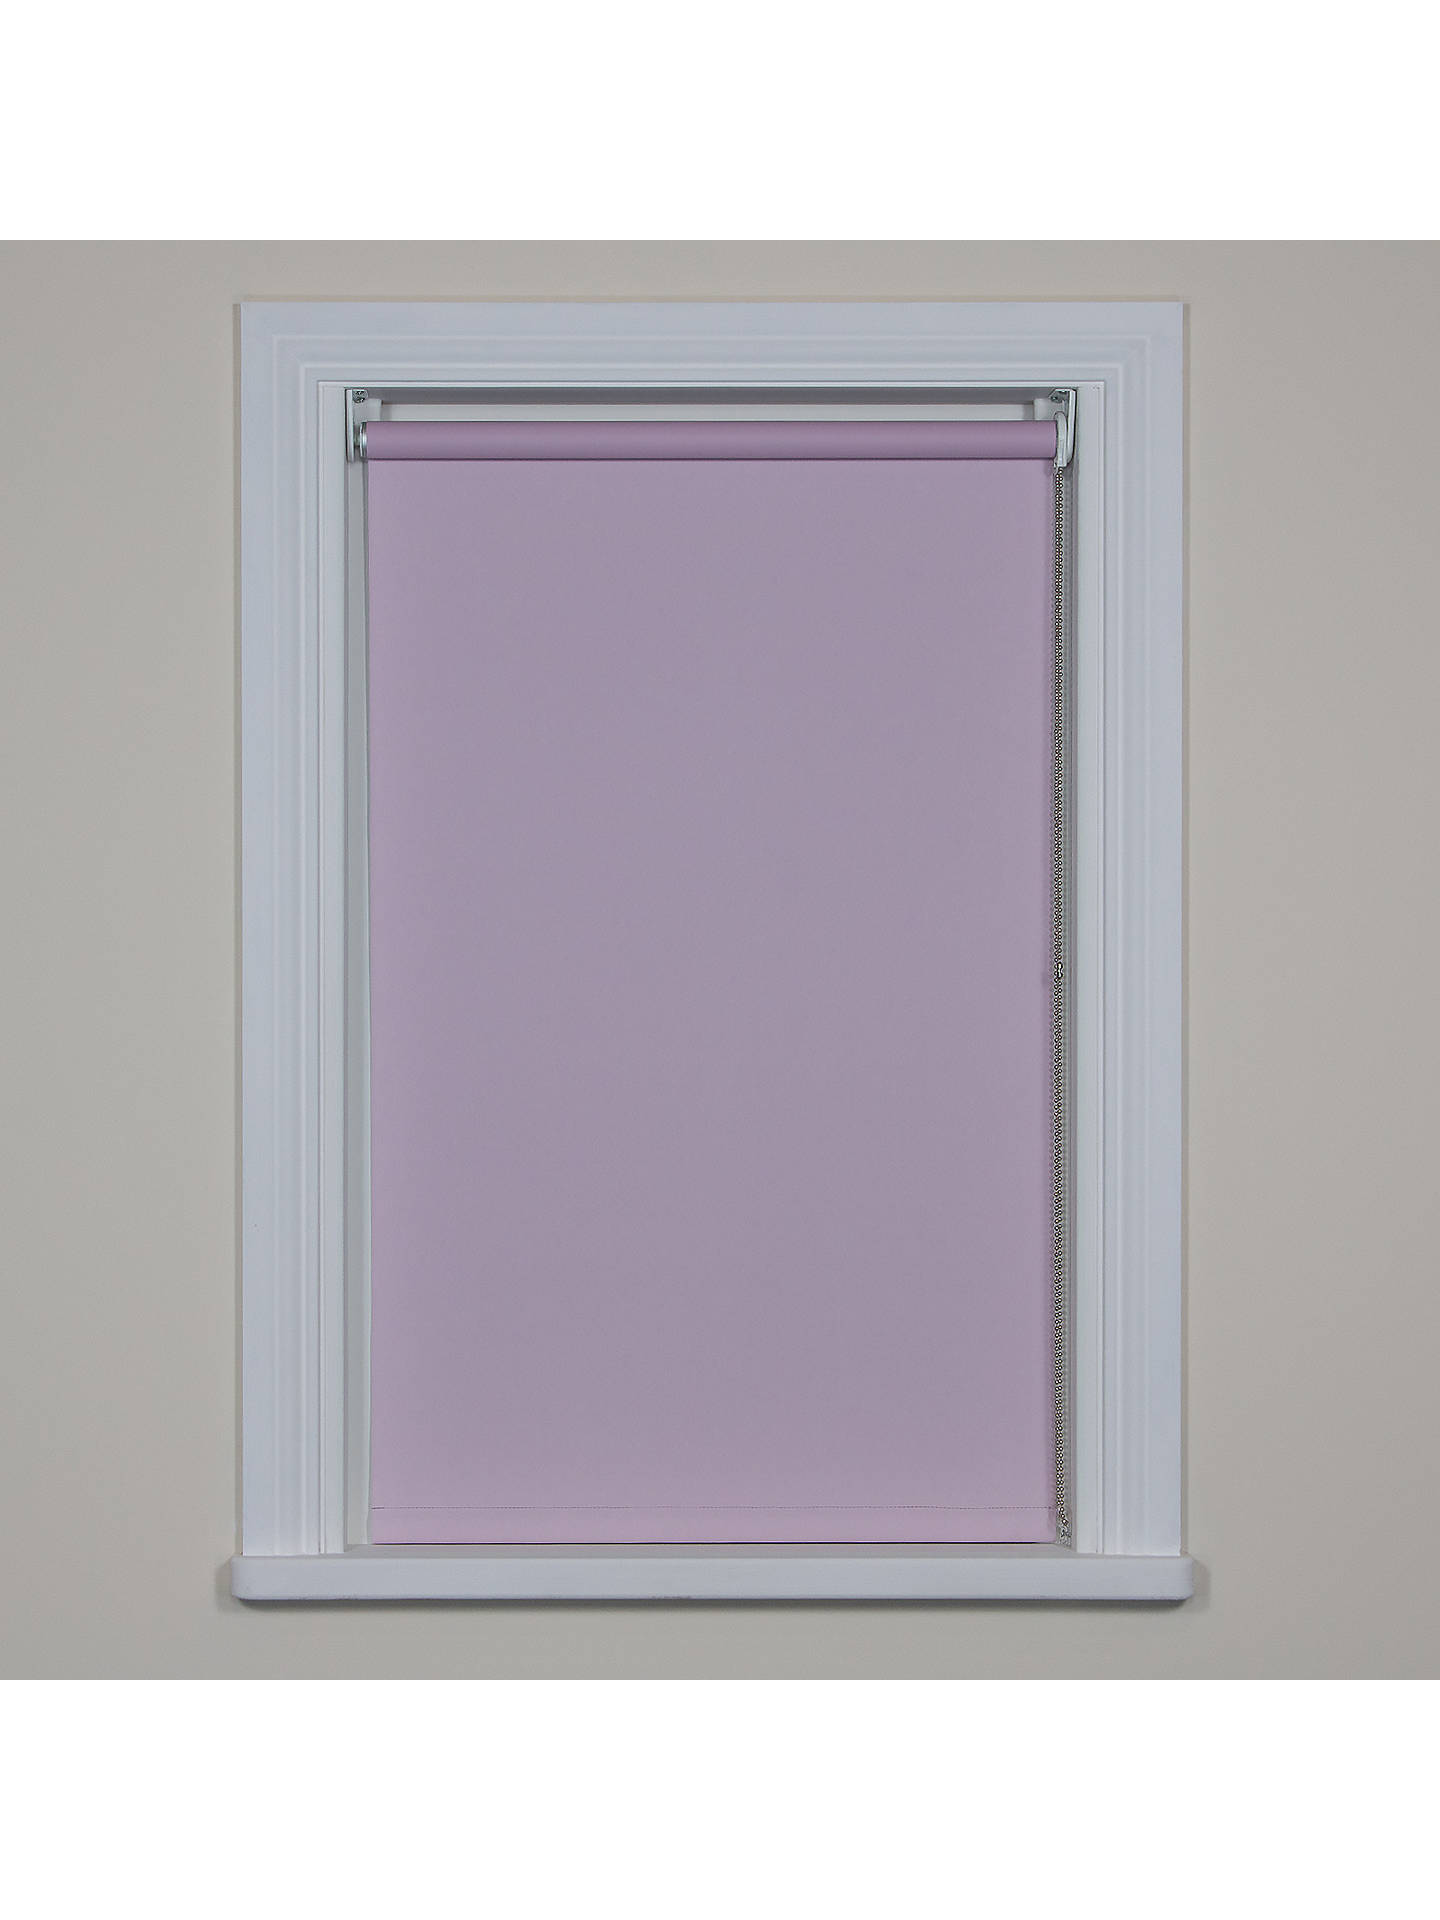 BuyBloc Fabric Changer Blackout Roller Blind, Sweet Rose, W61cm Online at johnlewis.com